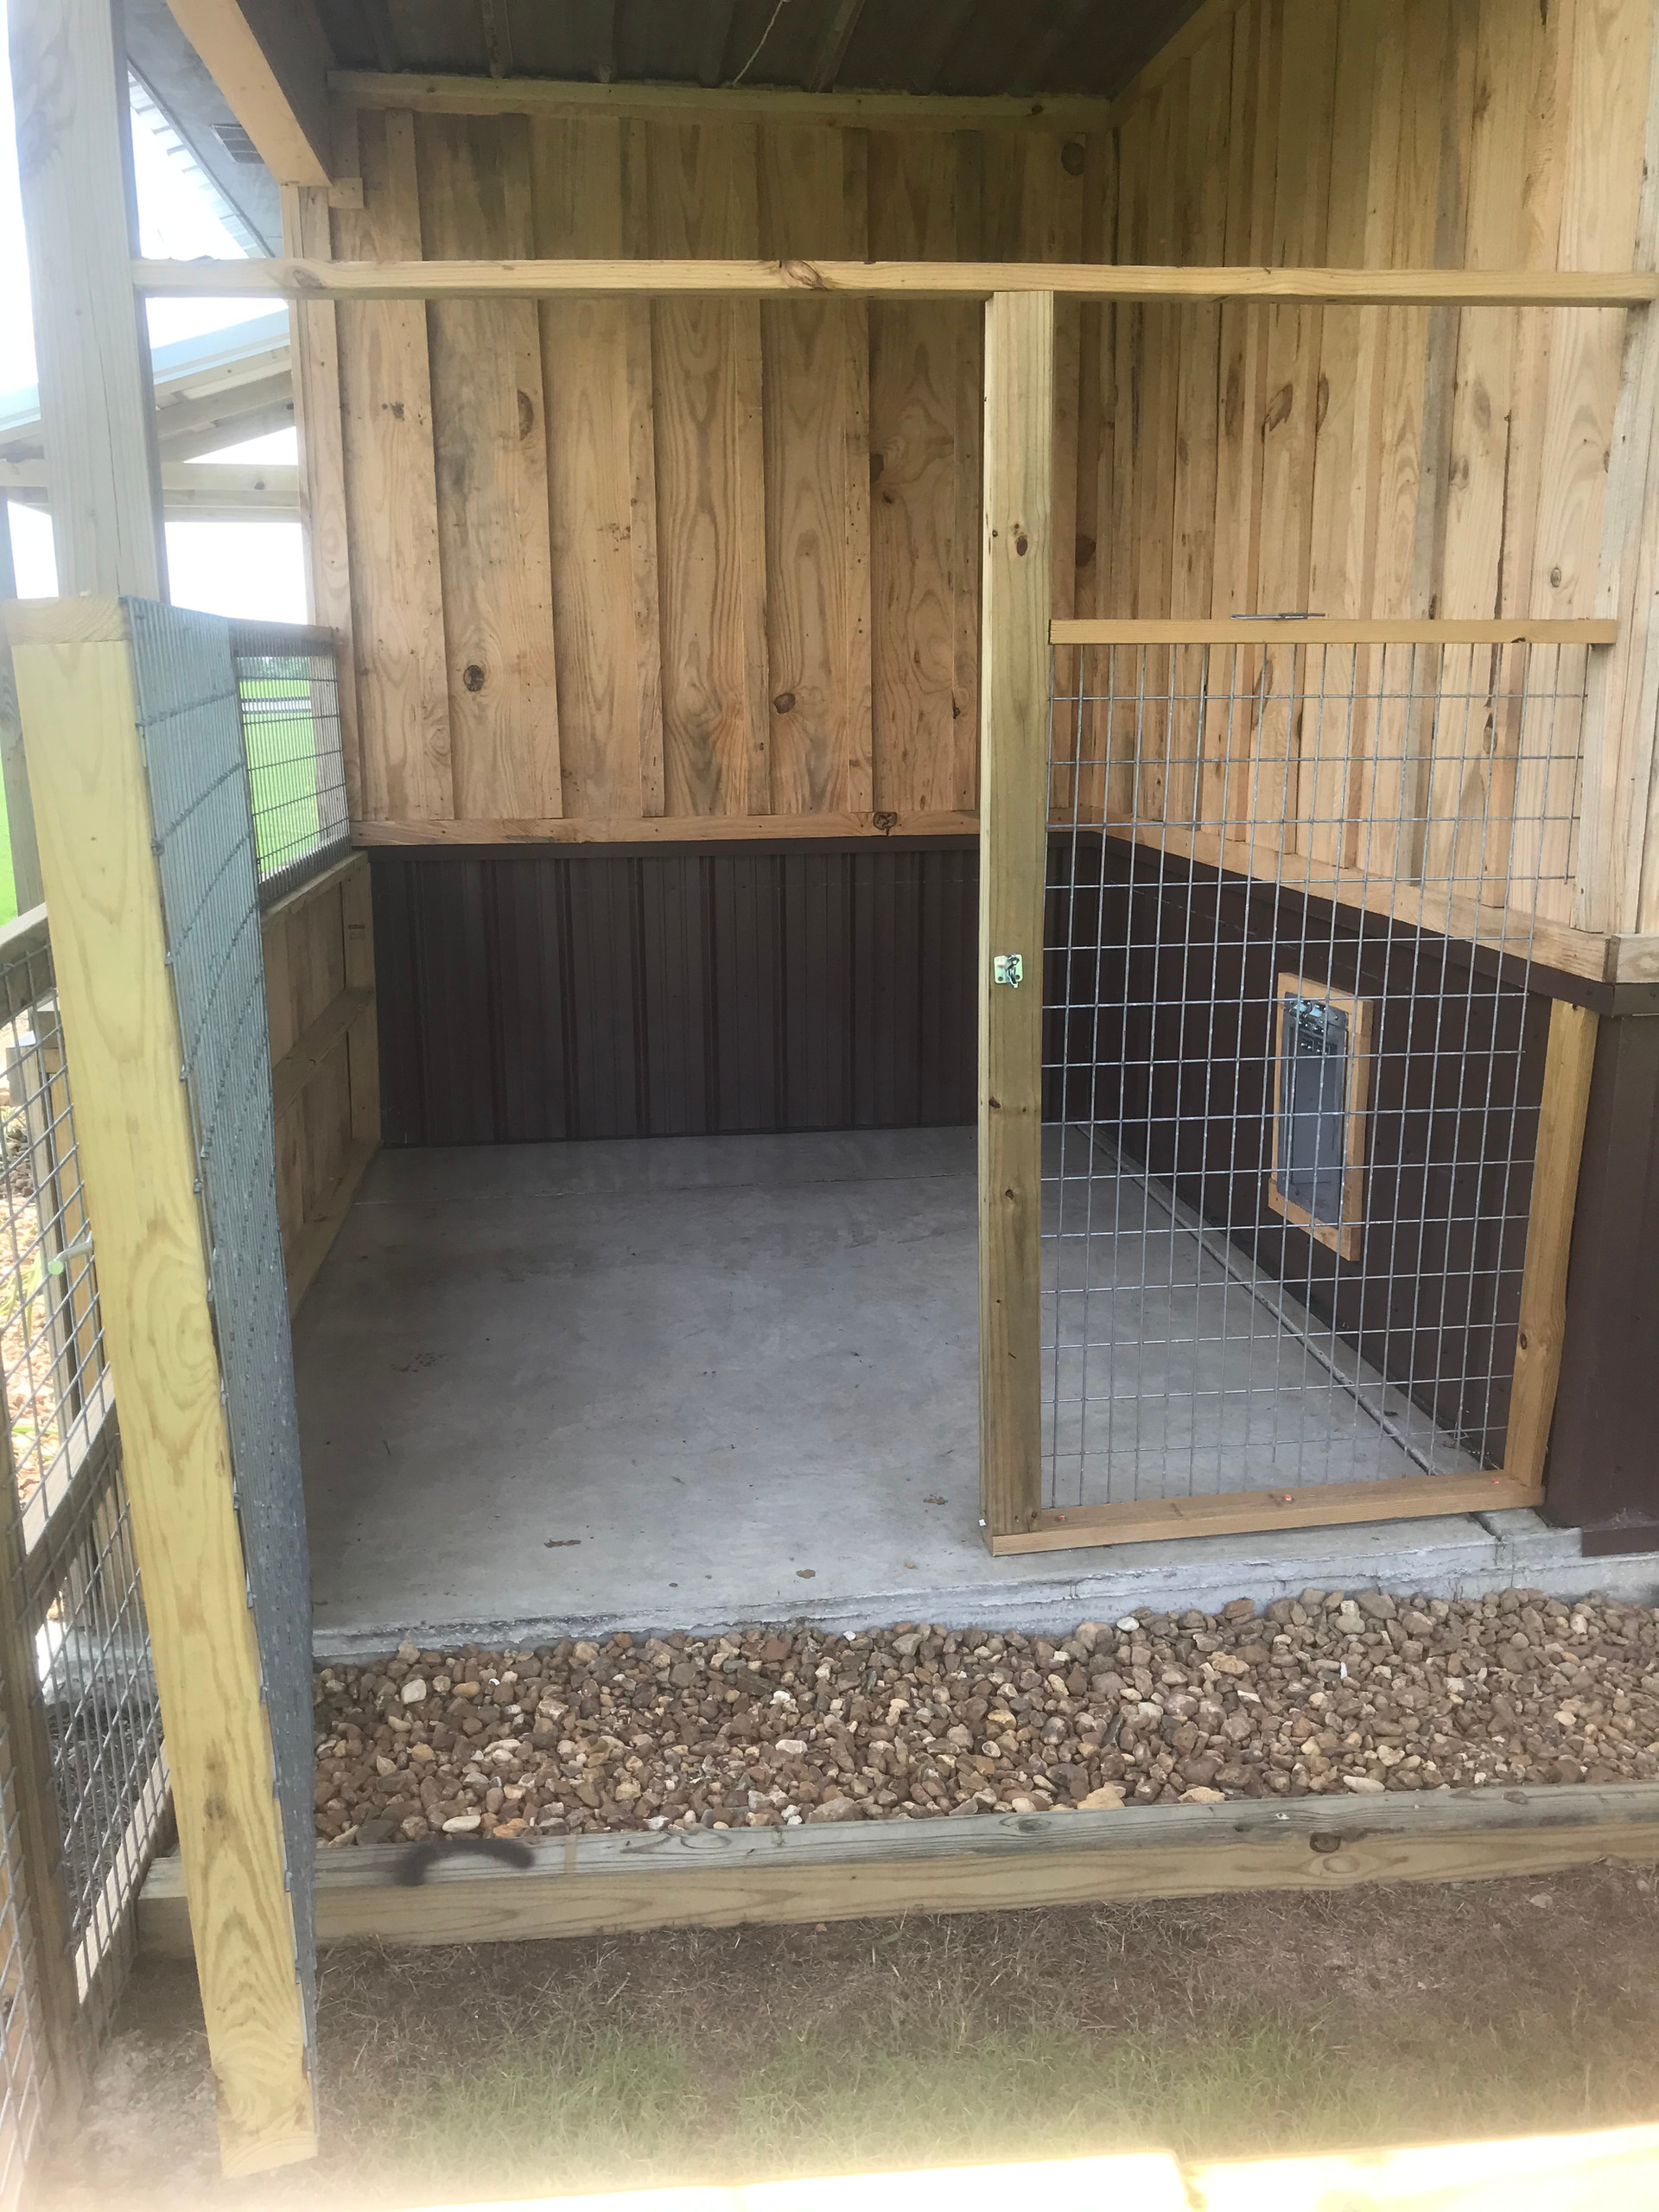 Outside kennel space